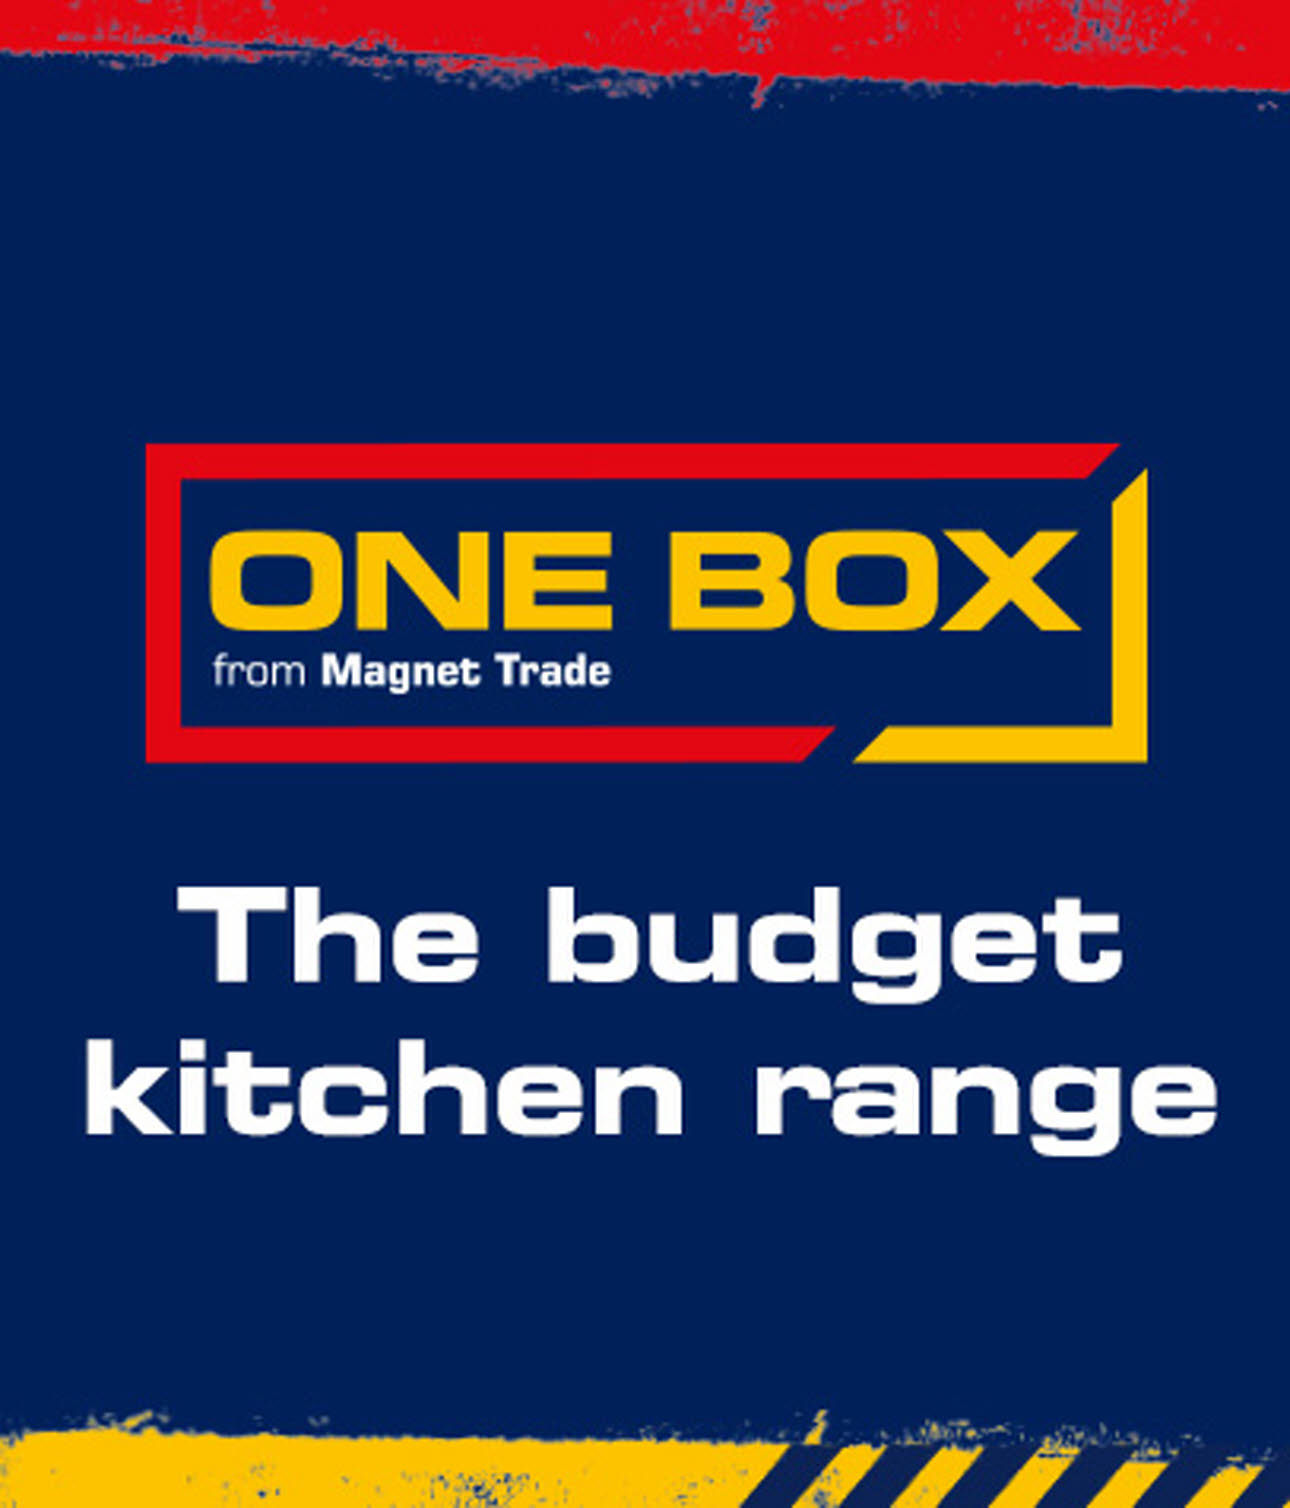 One Box Kitchens Logo - The budget kitchen range, blue, red & yellow